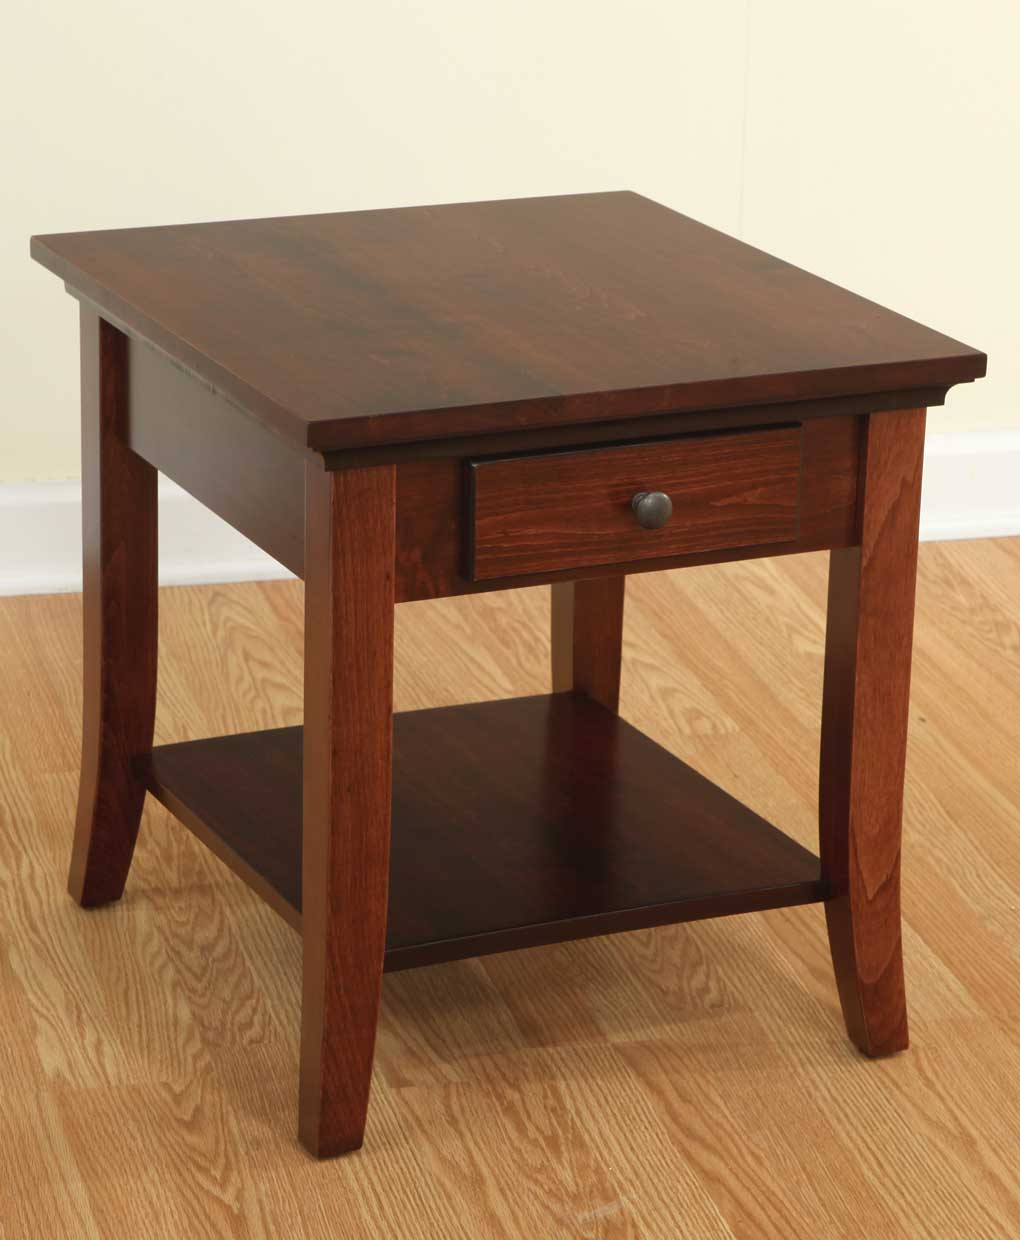 Carlisle shaker end table amish direct furniture carlisle shaker end table geotapseo Images